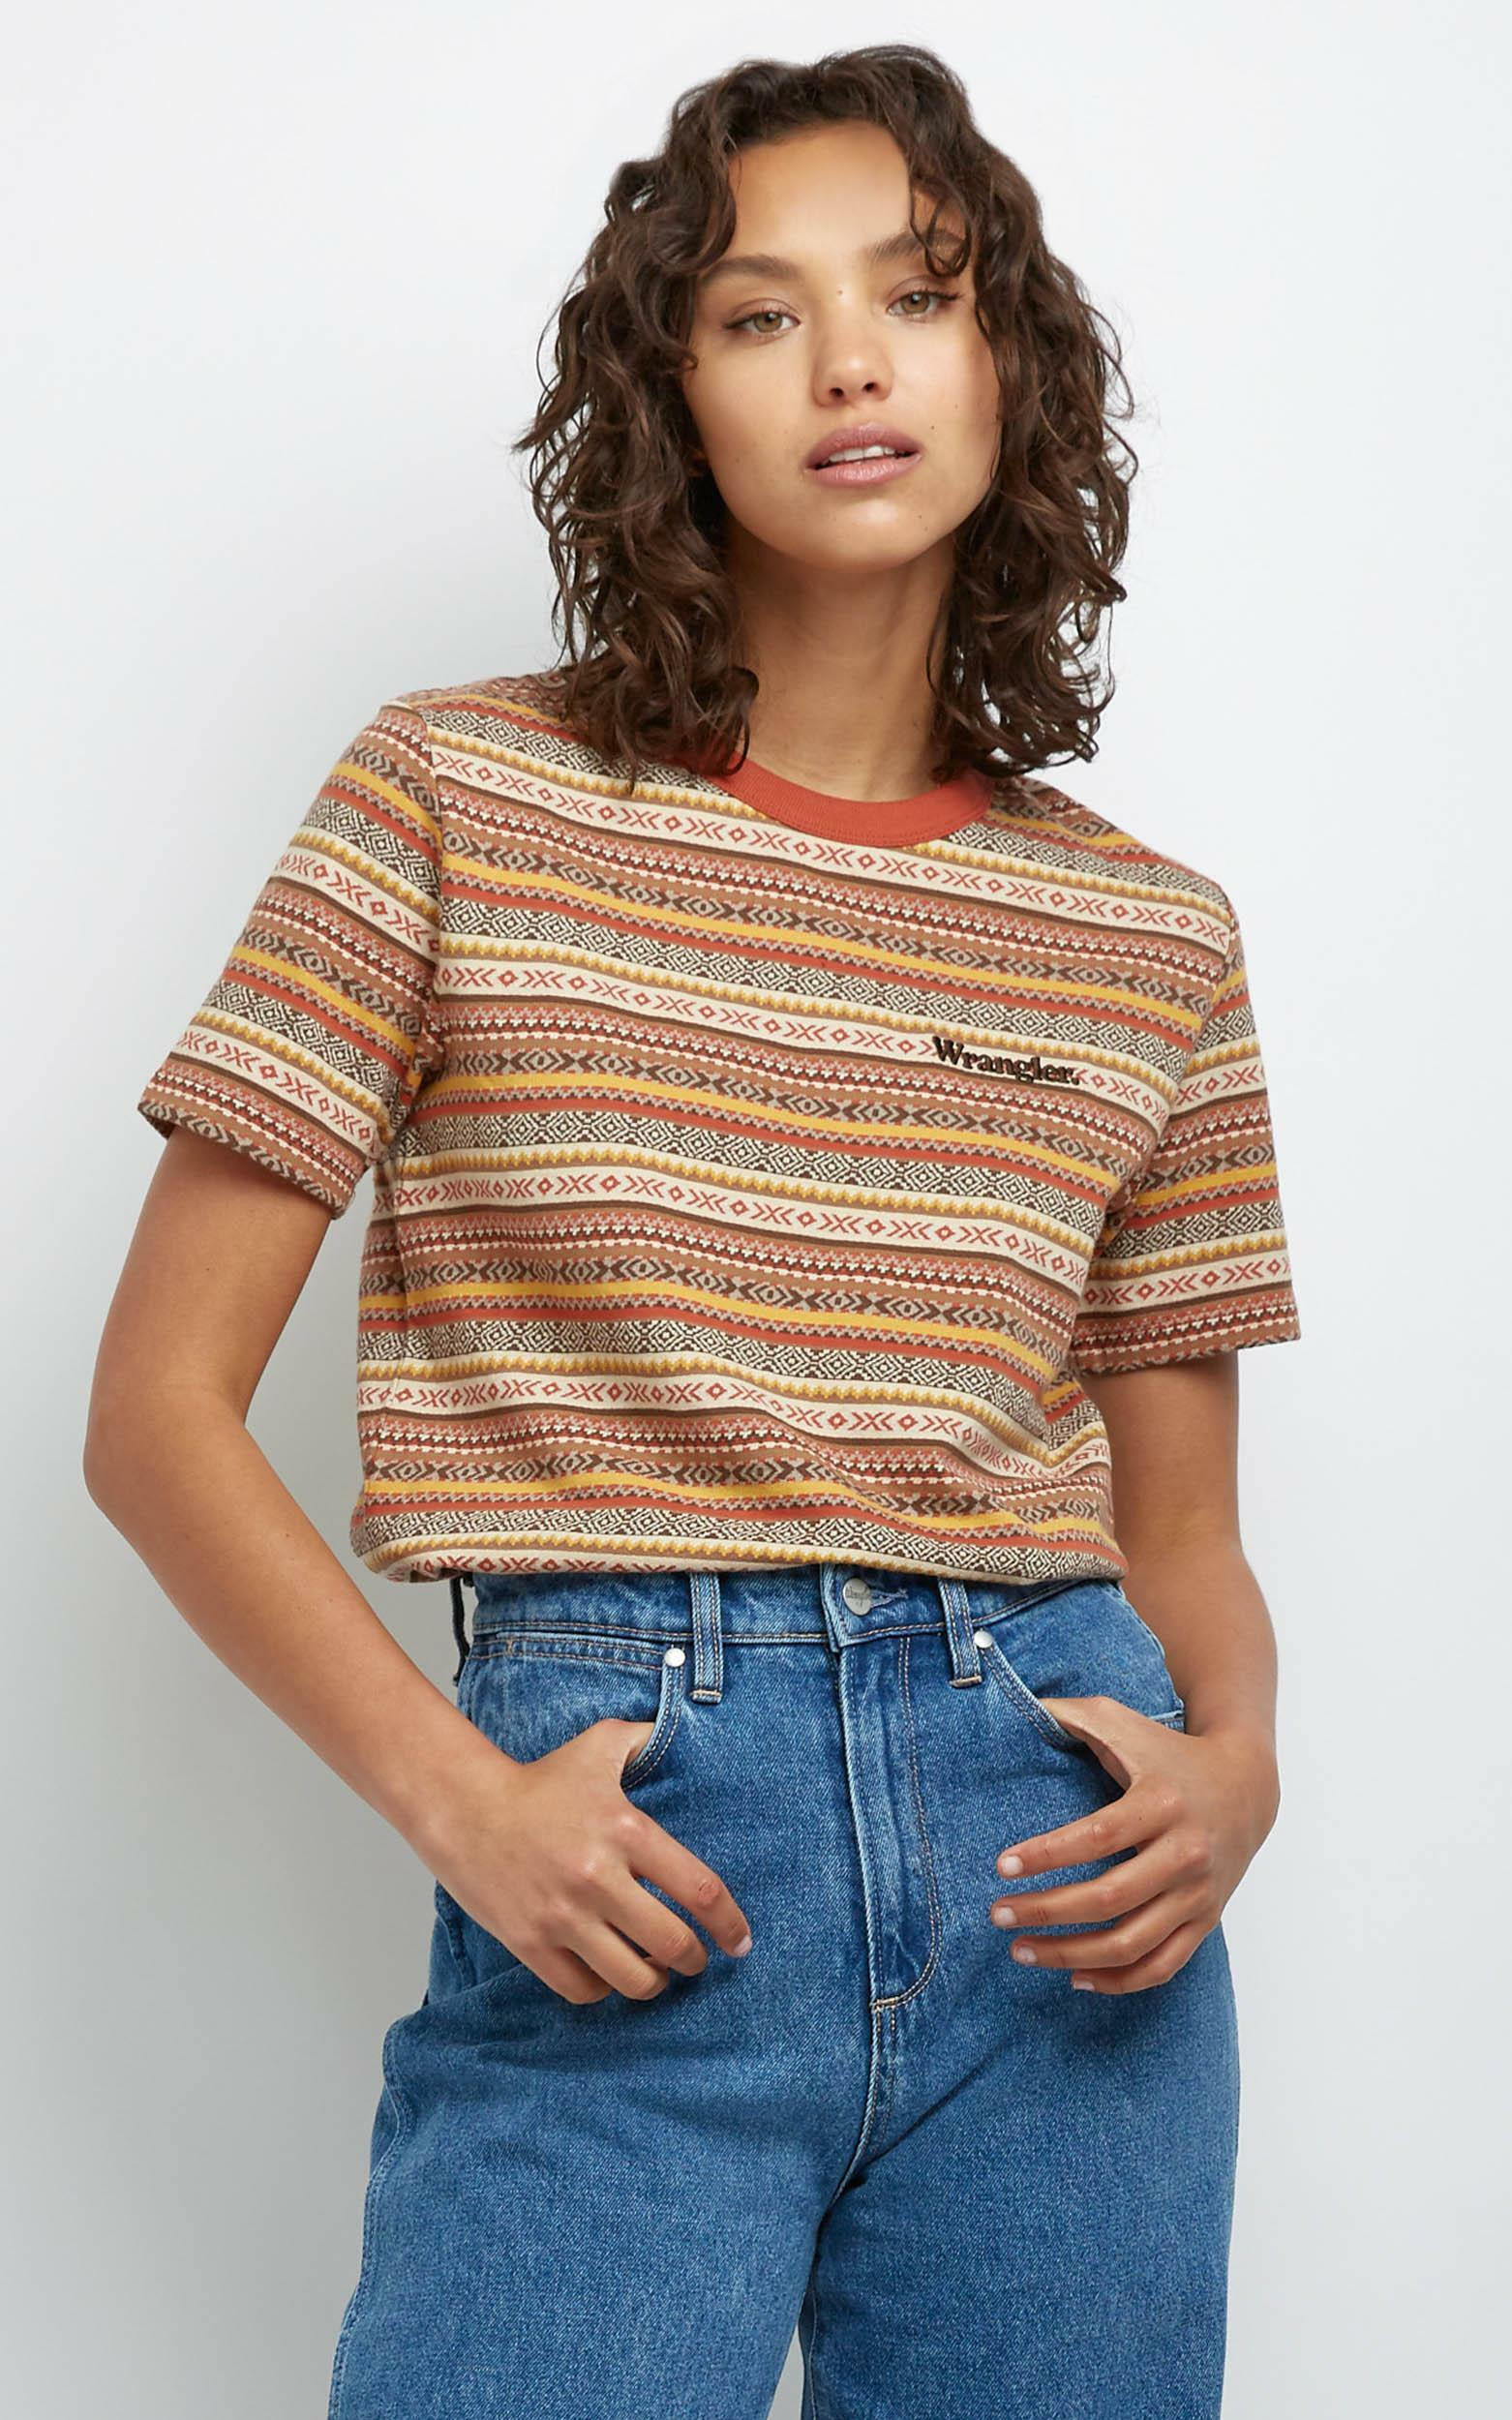 Wrangler - Wanderer Tee in Jacquard Stripe - 14 (XL), Red, hi-res image number null